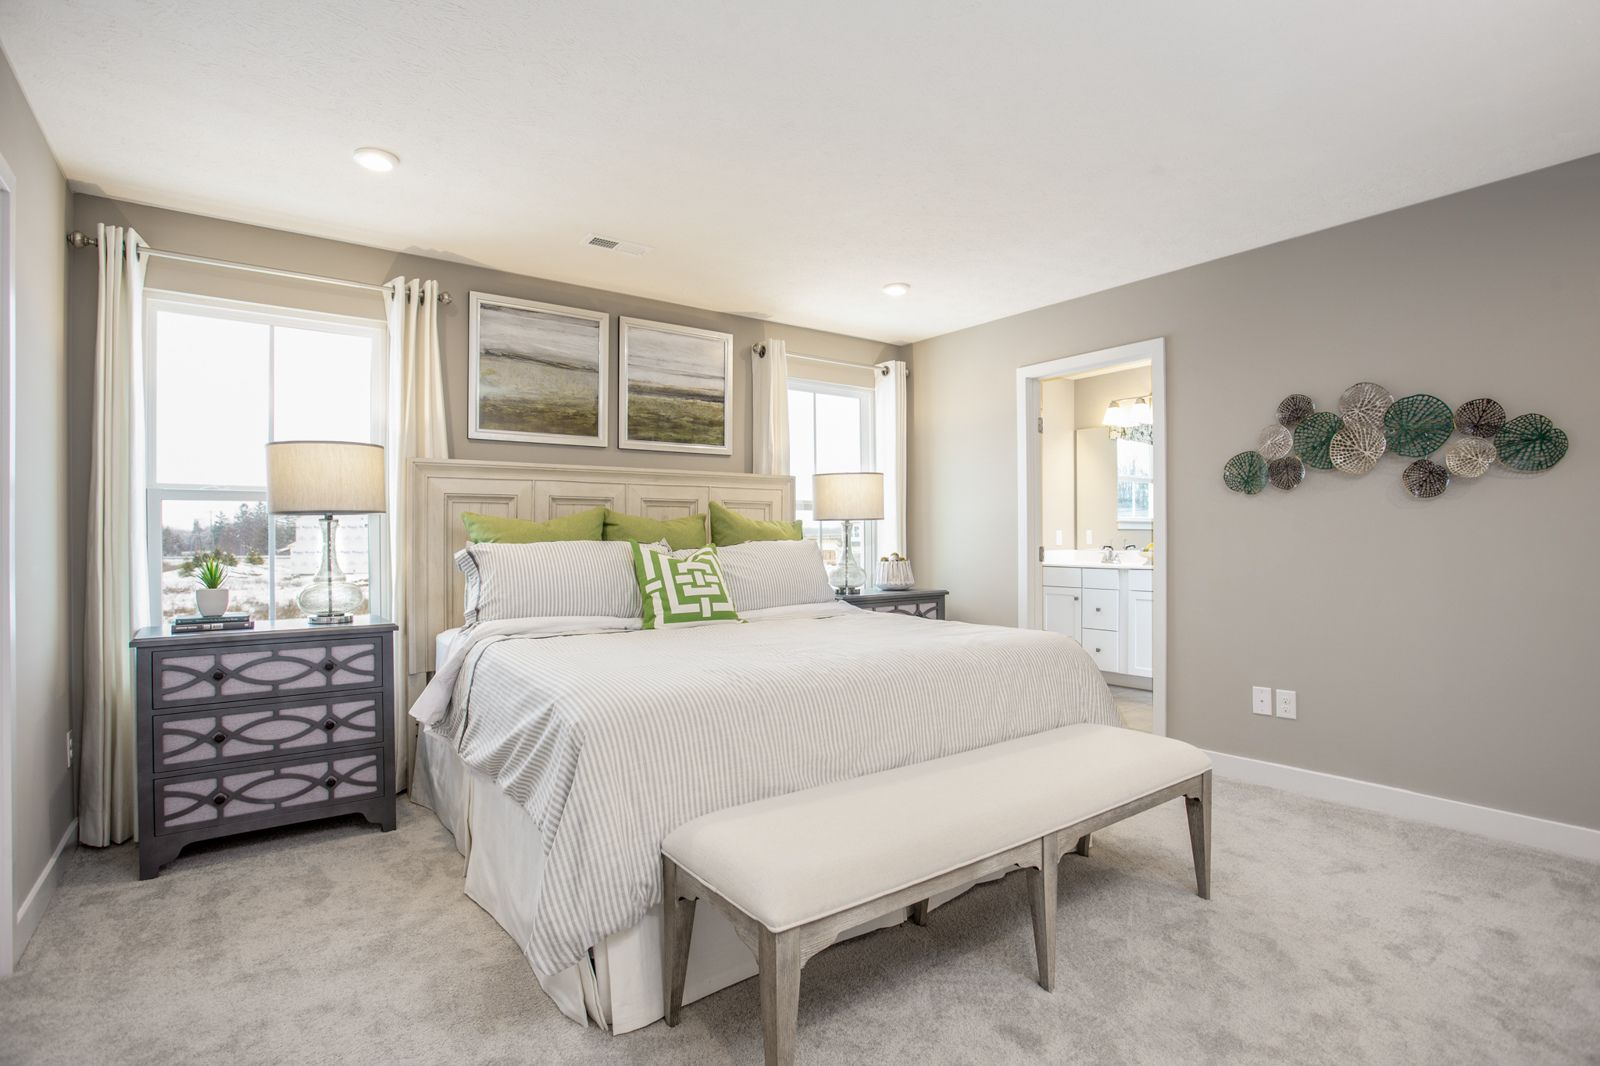 Bedroom featured in the Rosecliff Lux w/ 2' Ext, Rec Rm & Bath By Ryan Homes